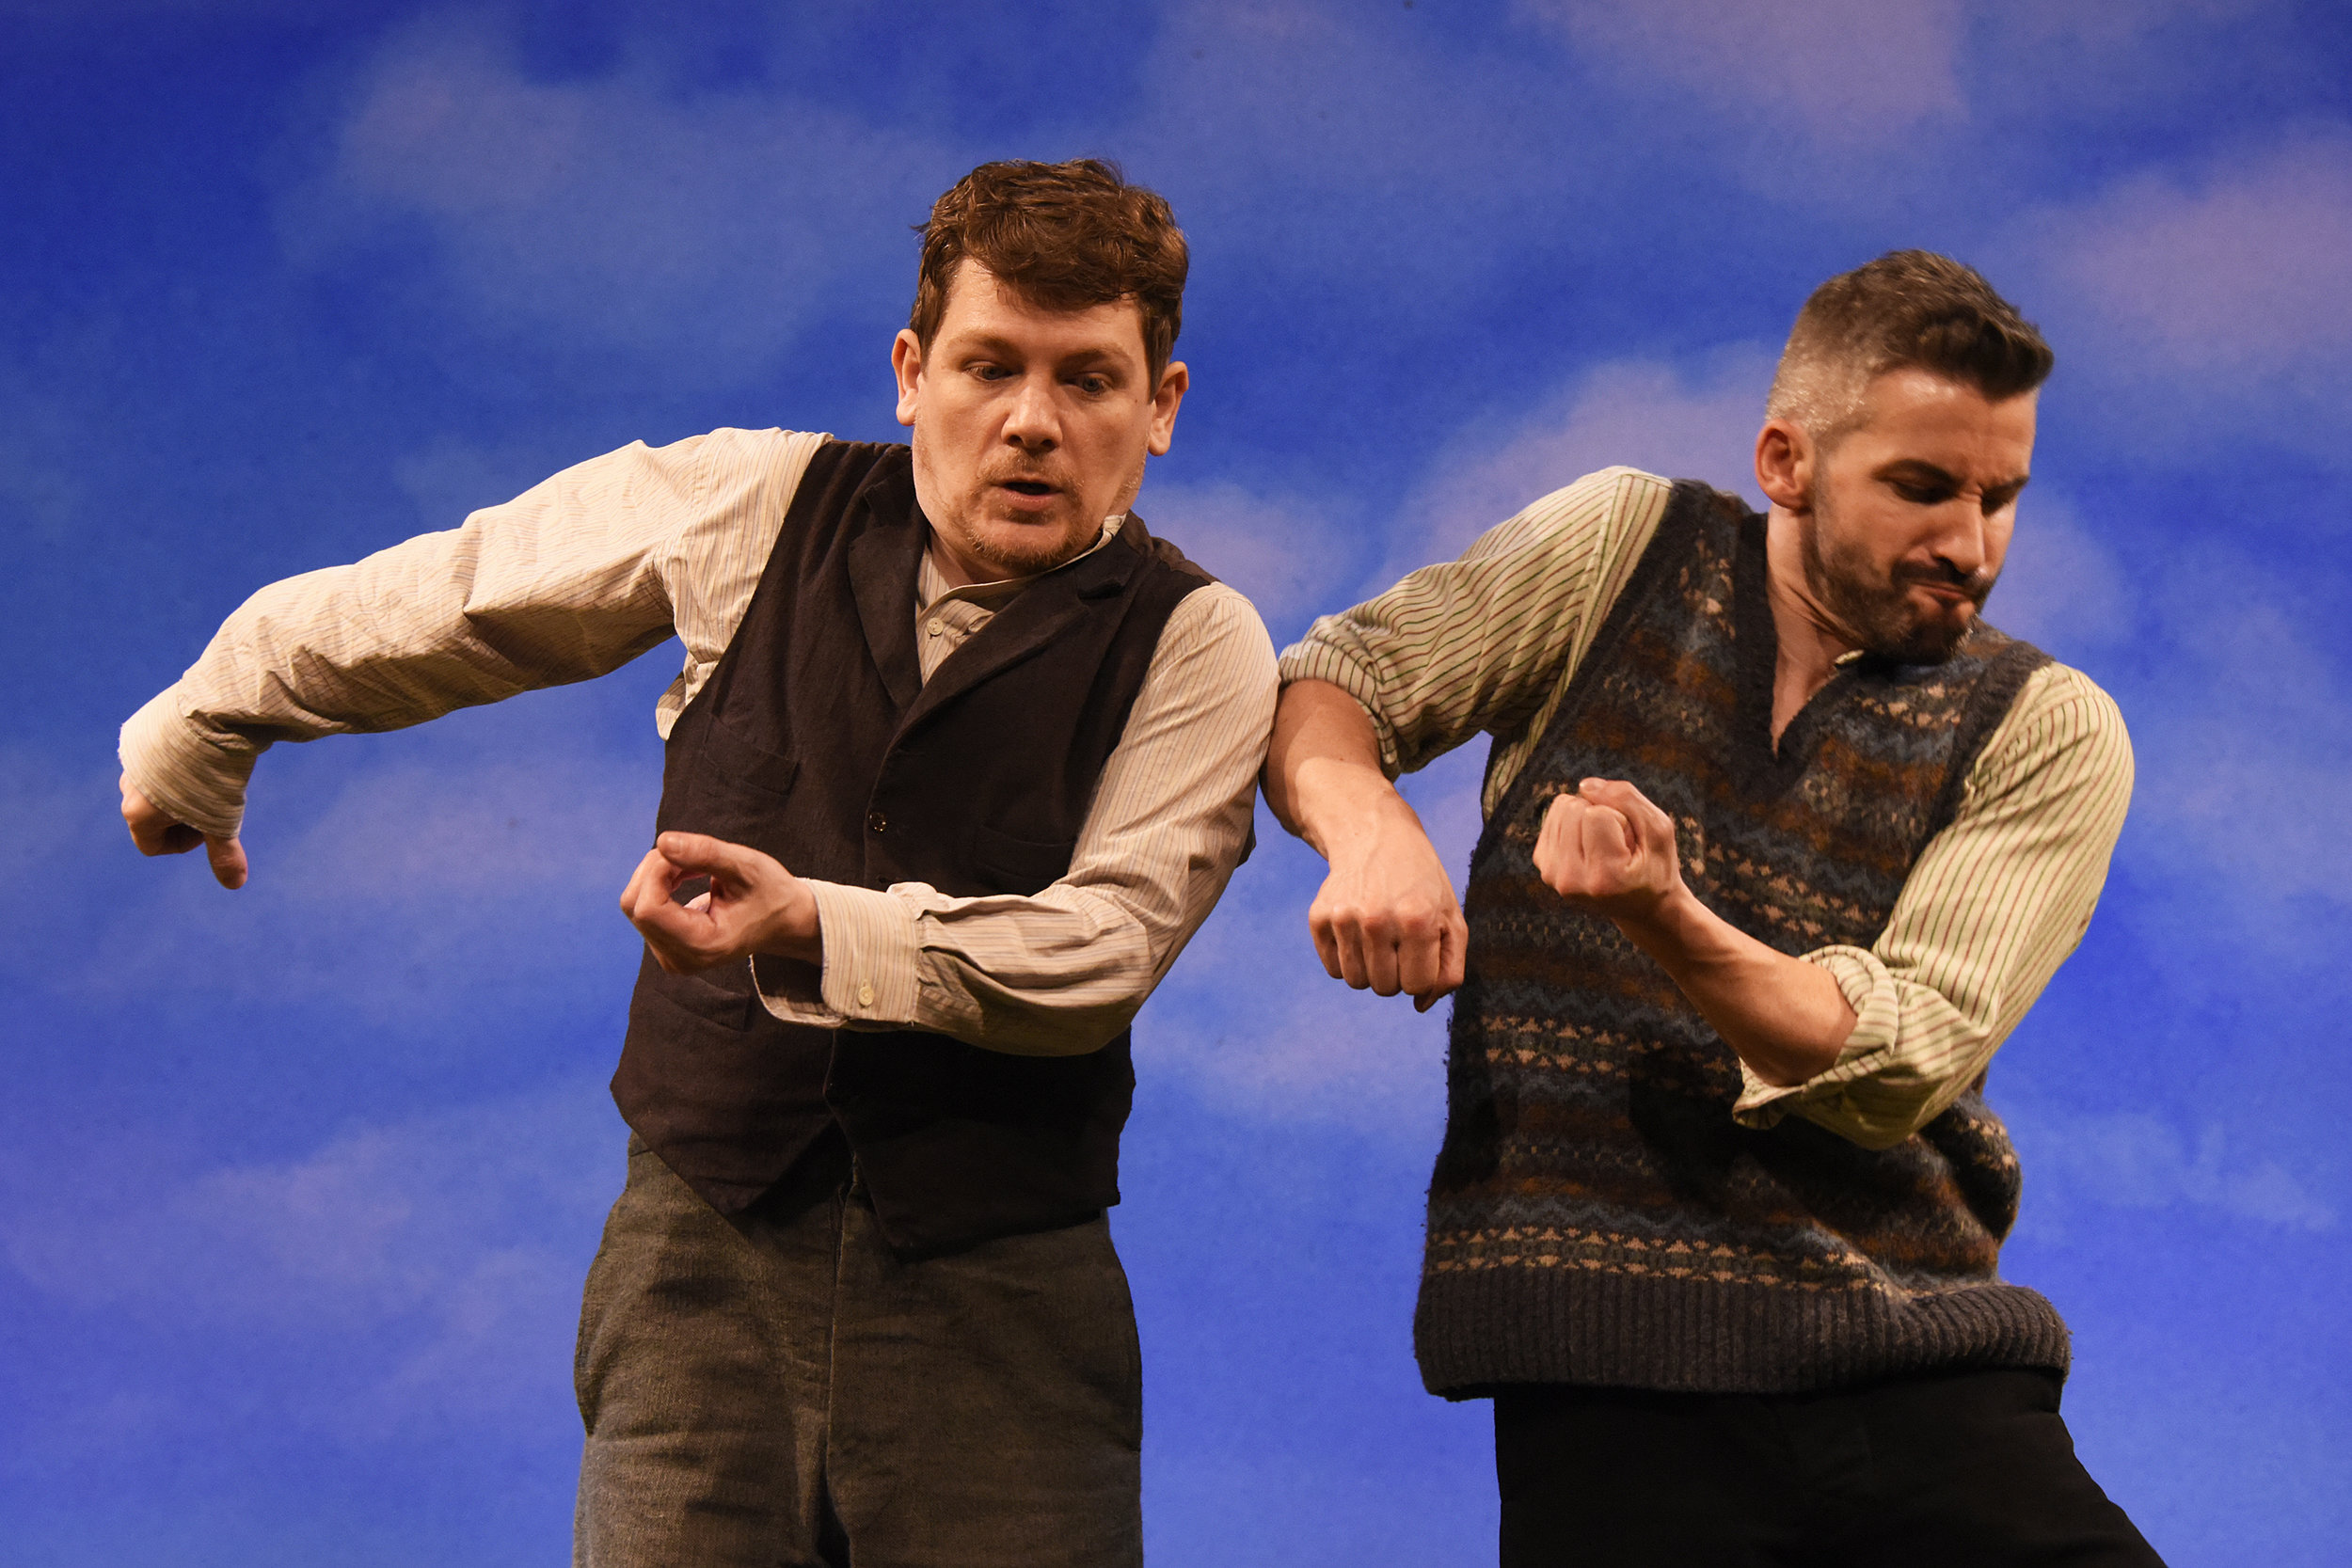 Kevin Trainor and Owen Sharpe as Charlie and Jake riverdancing (or are they cutting turf?)